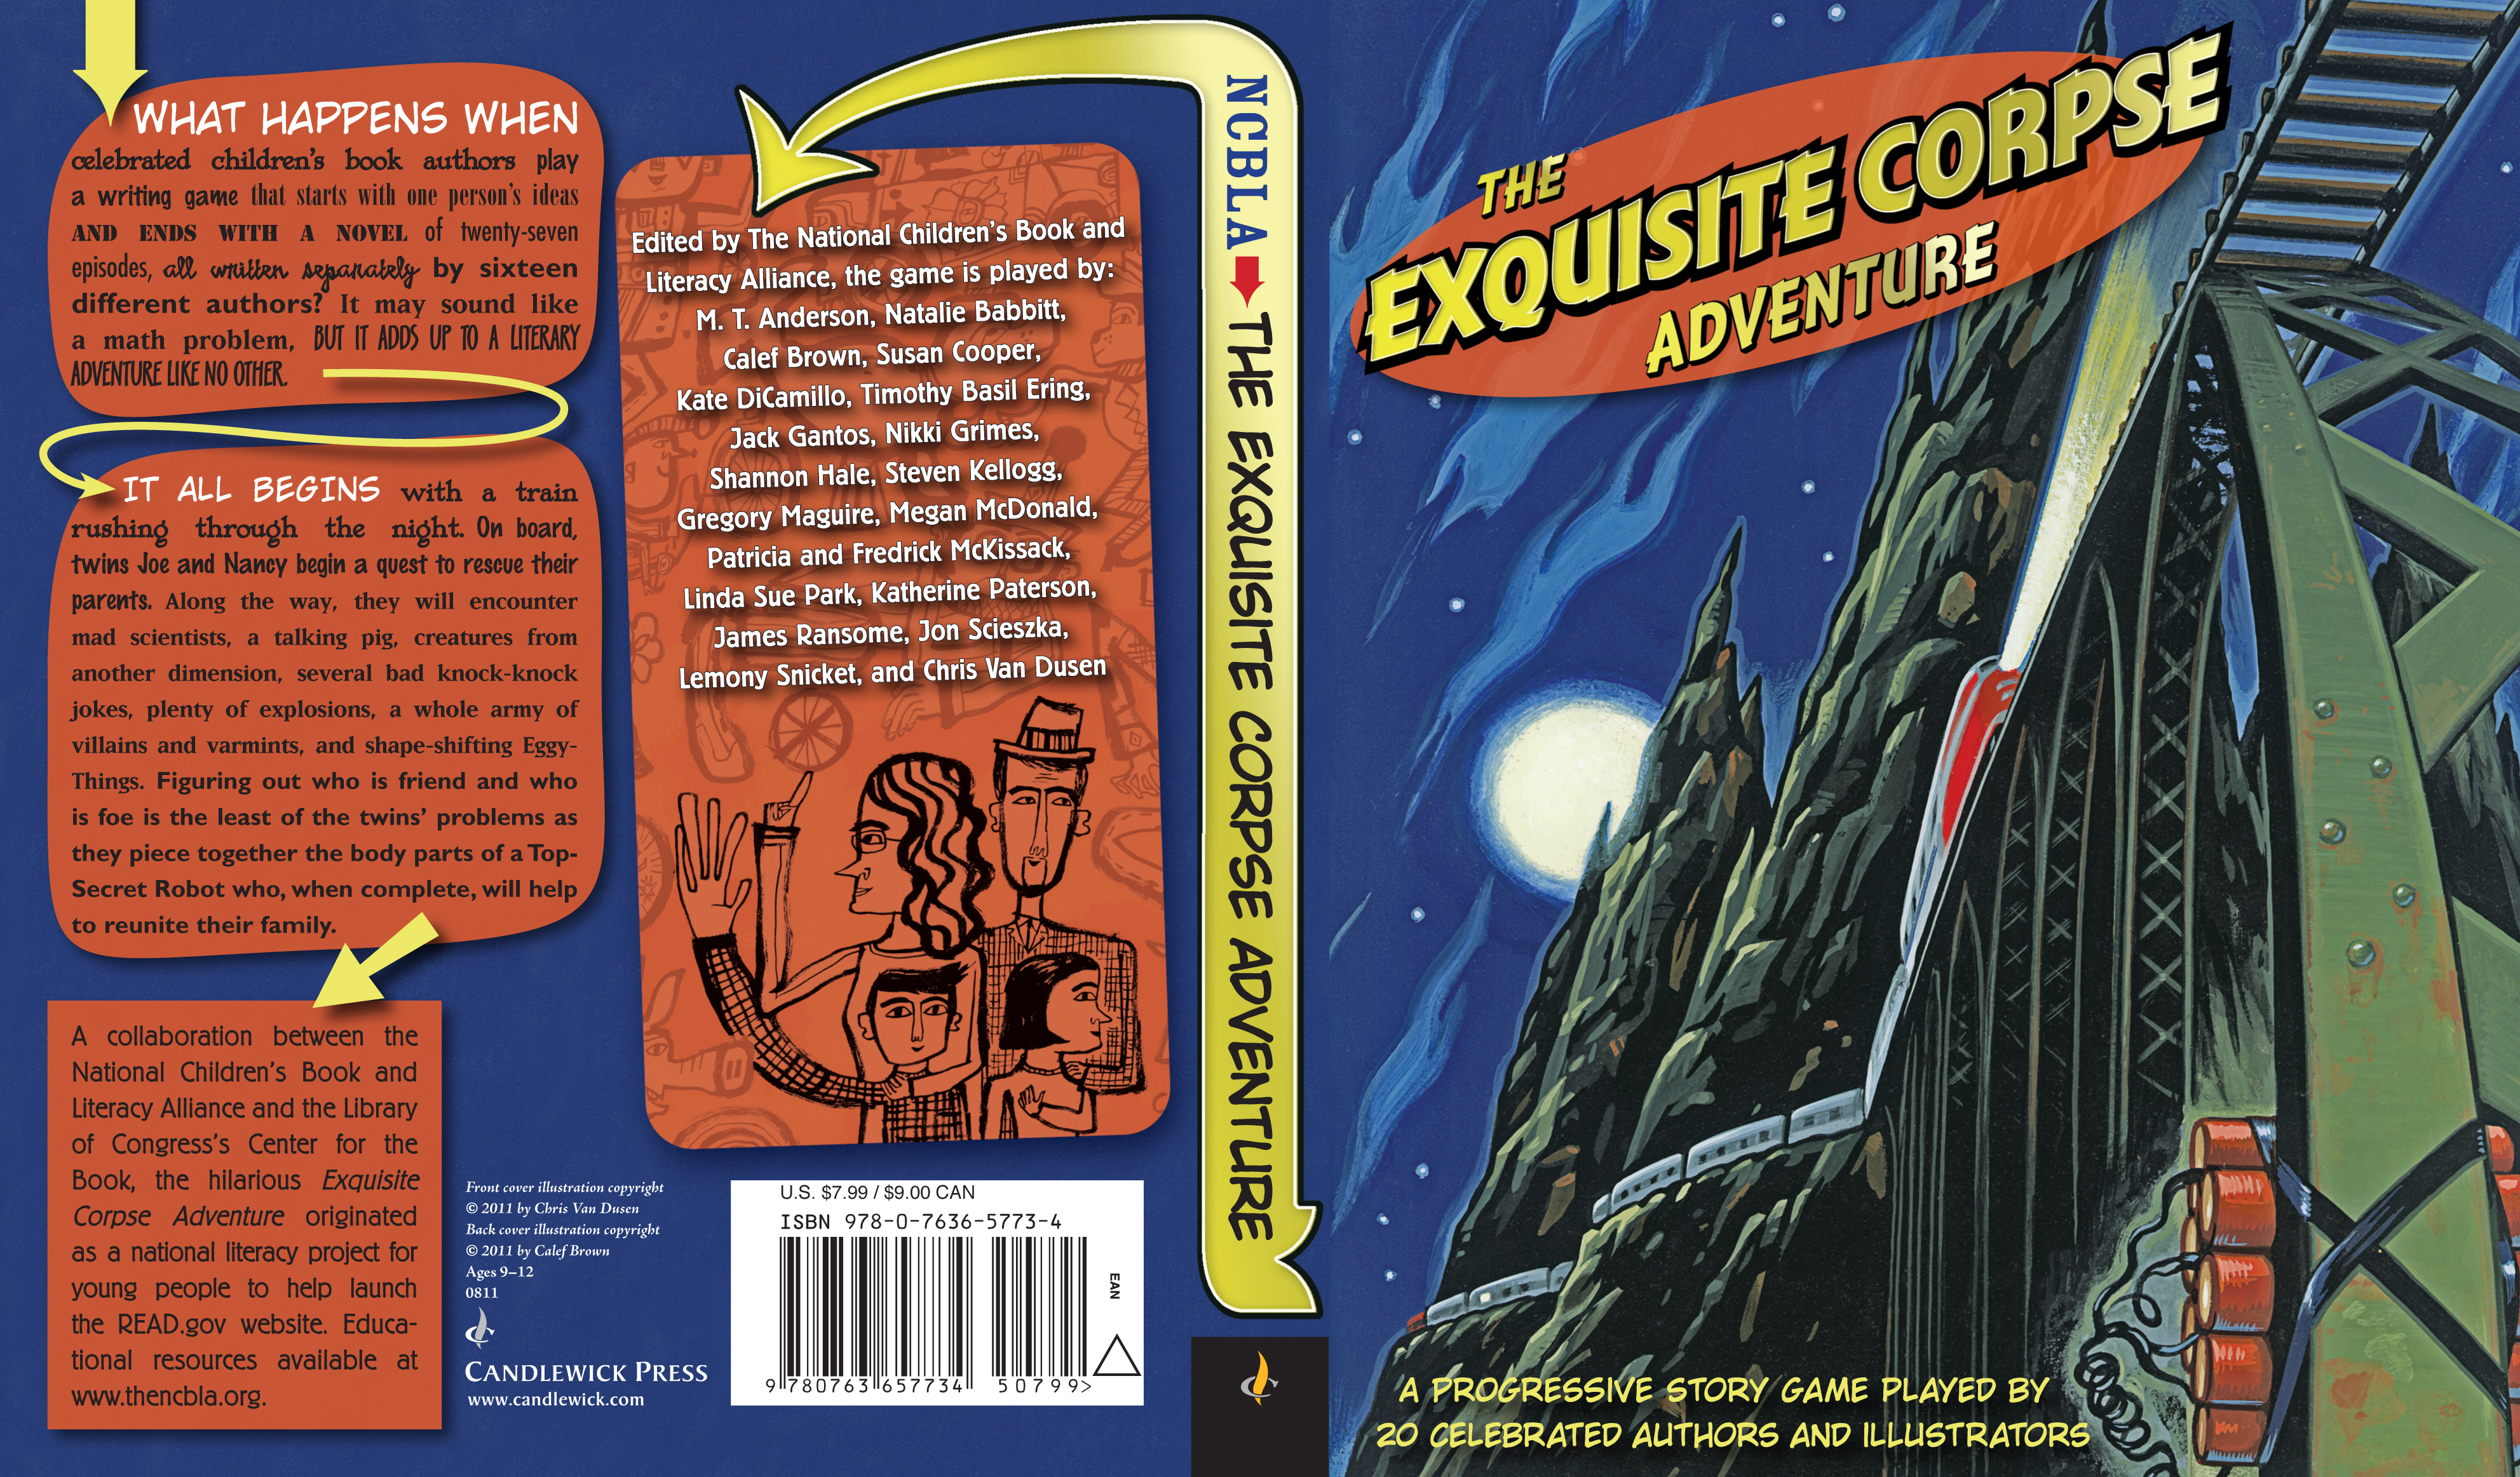 Paperback cover for THE EXQUISITE CORPSE ADVENTURE